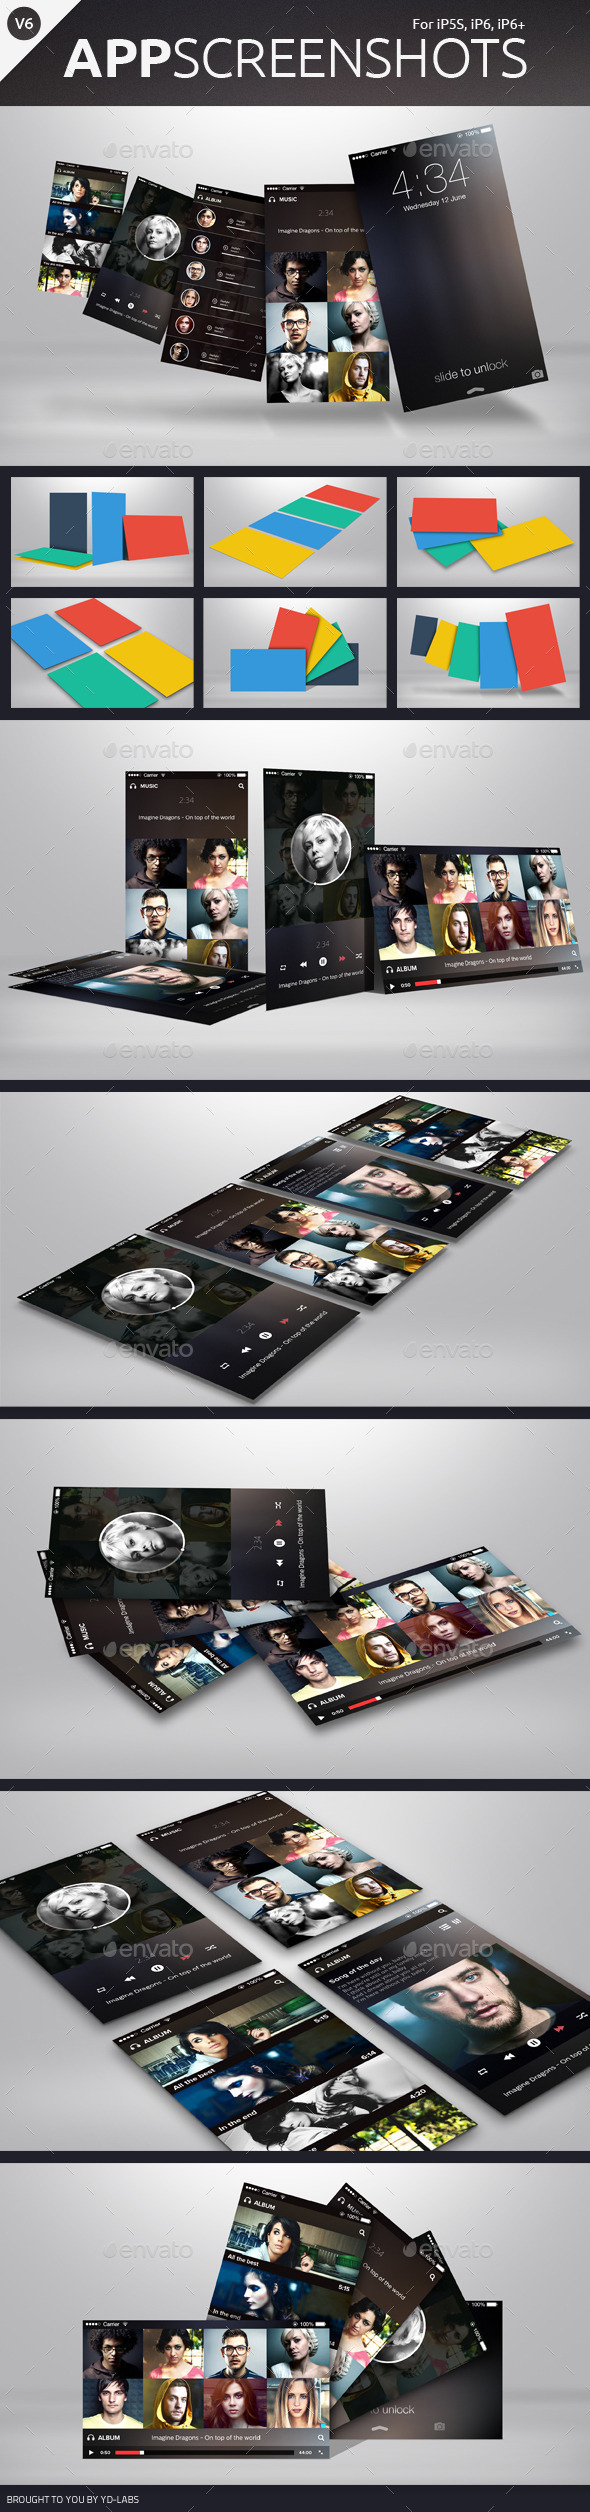 GraphicRiver App Screenshot Mockups V6 10081534